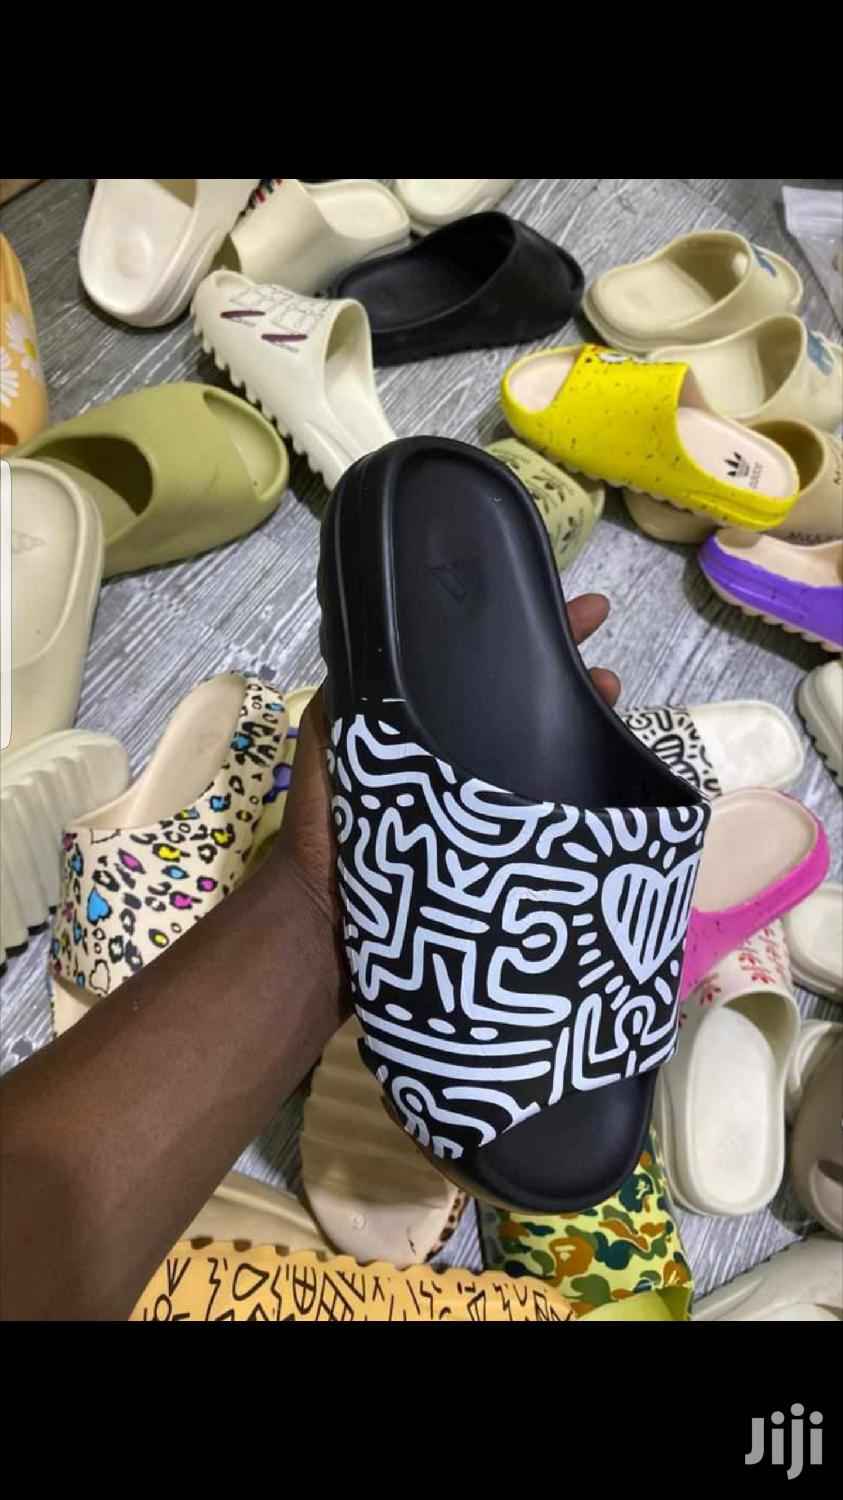 Brand New Classy Men's Shoes   Shoes for sale in Kampala, Central Region, Uganda